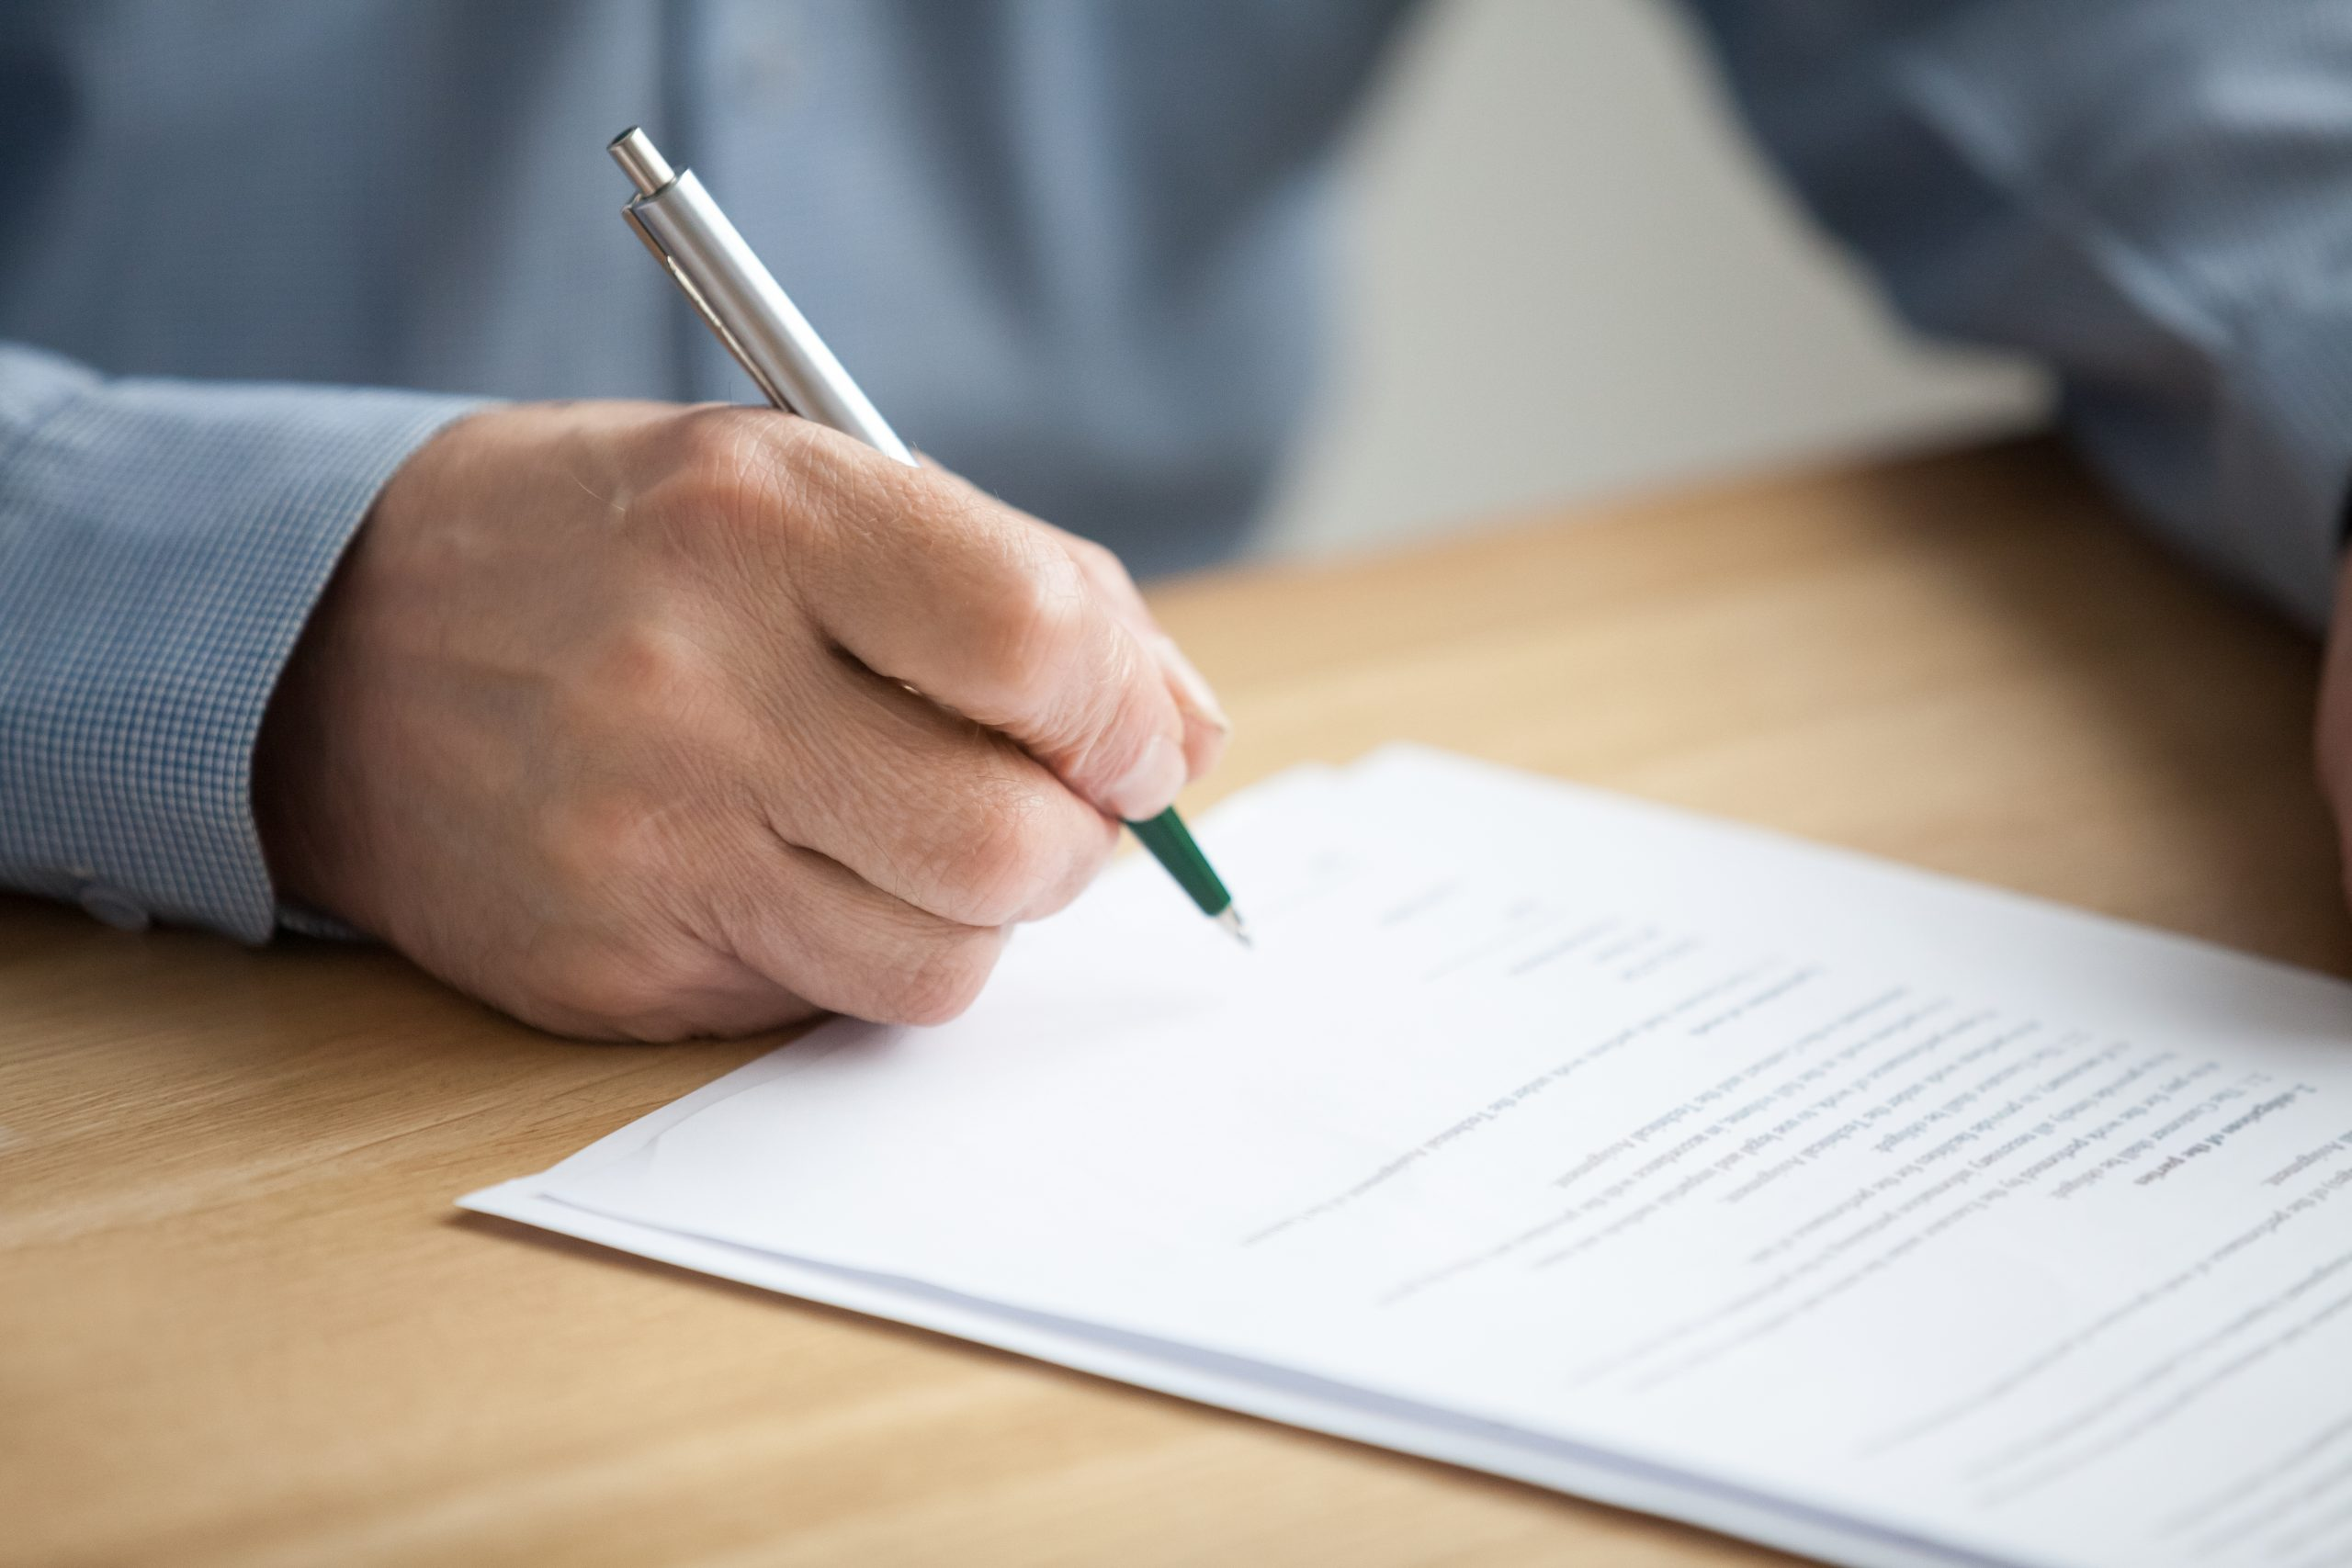 Protect Your Legacy by Writing Your Will